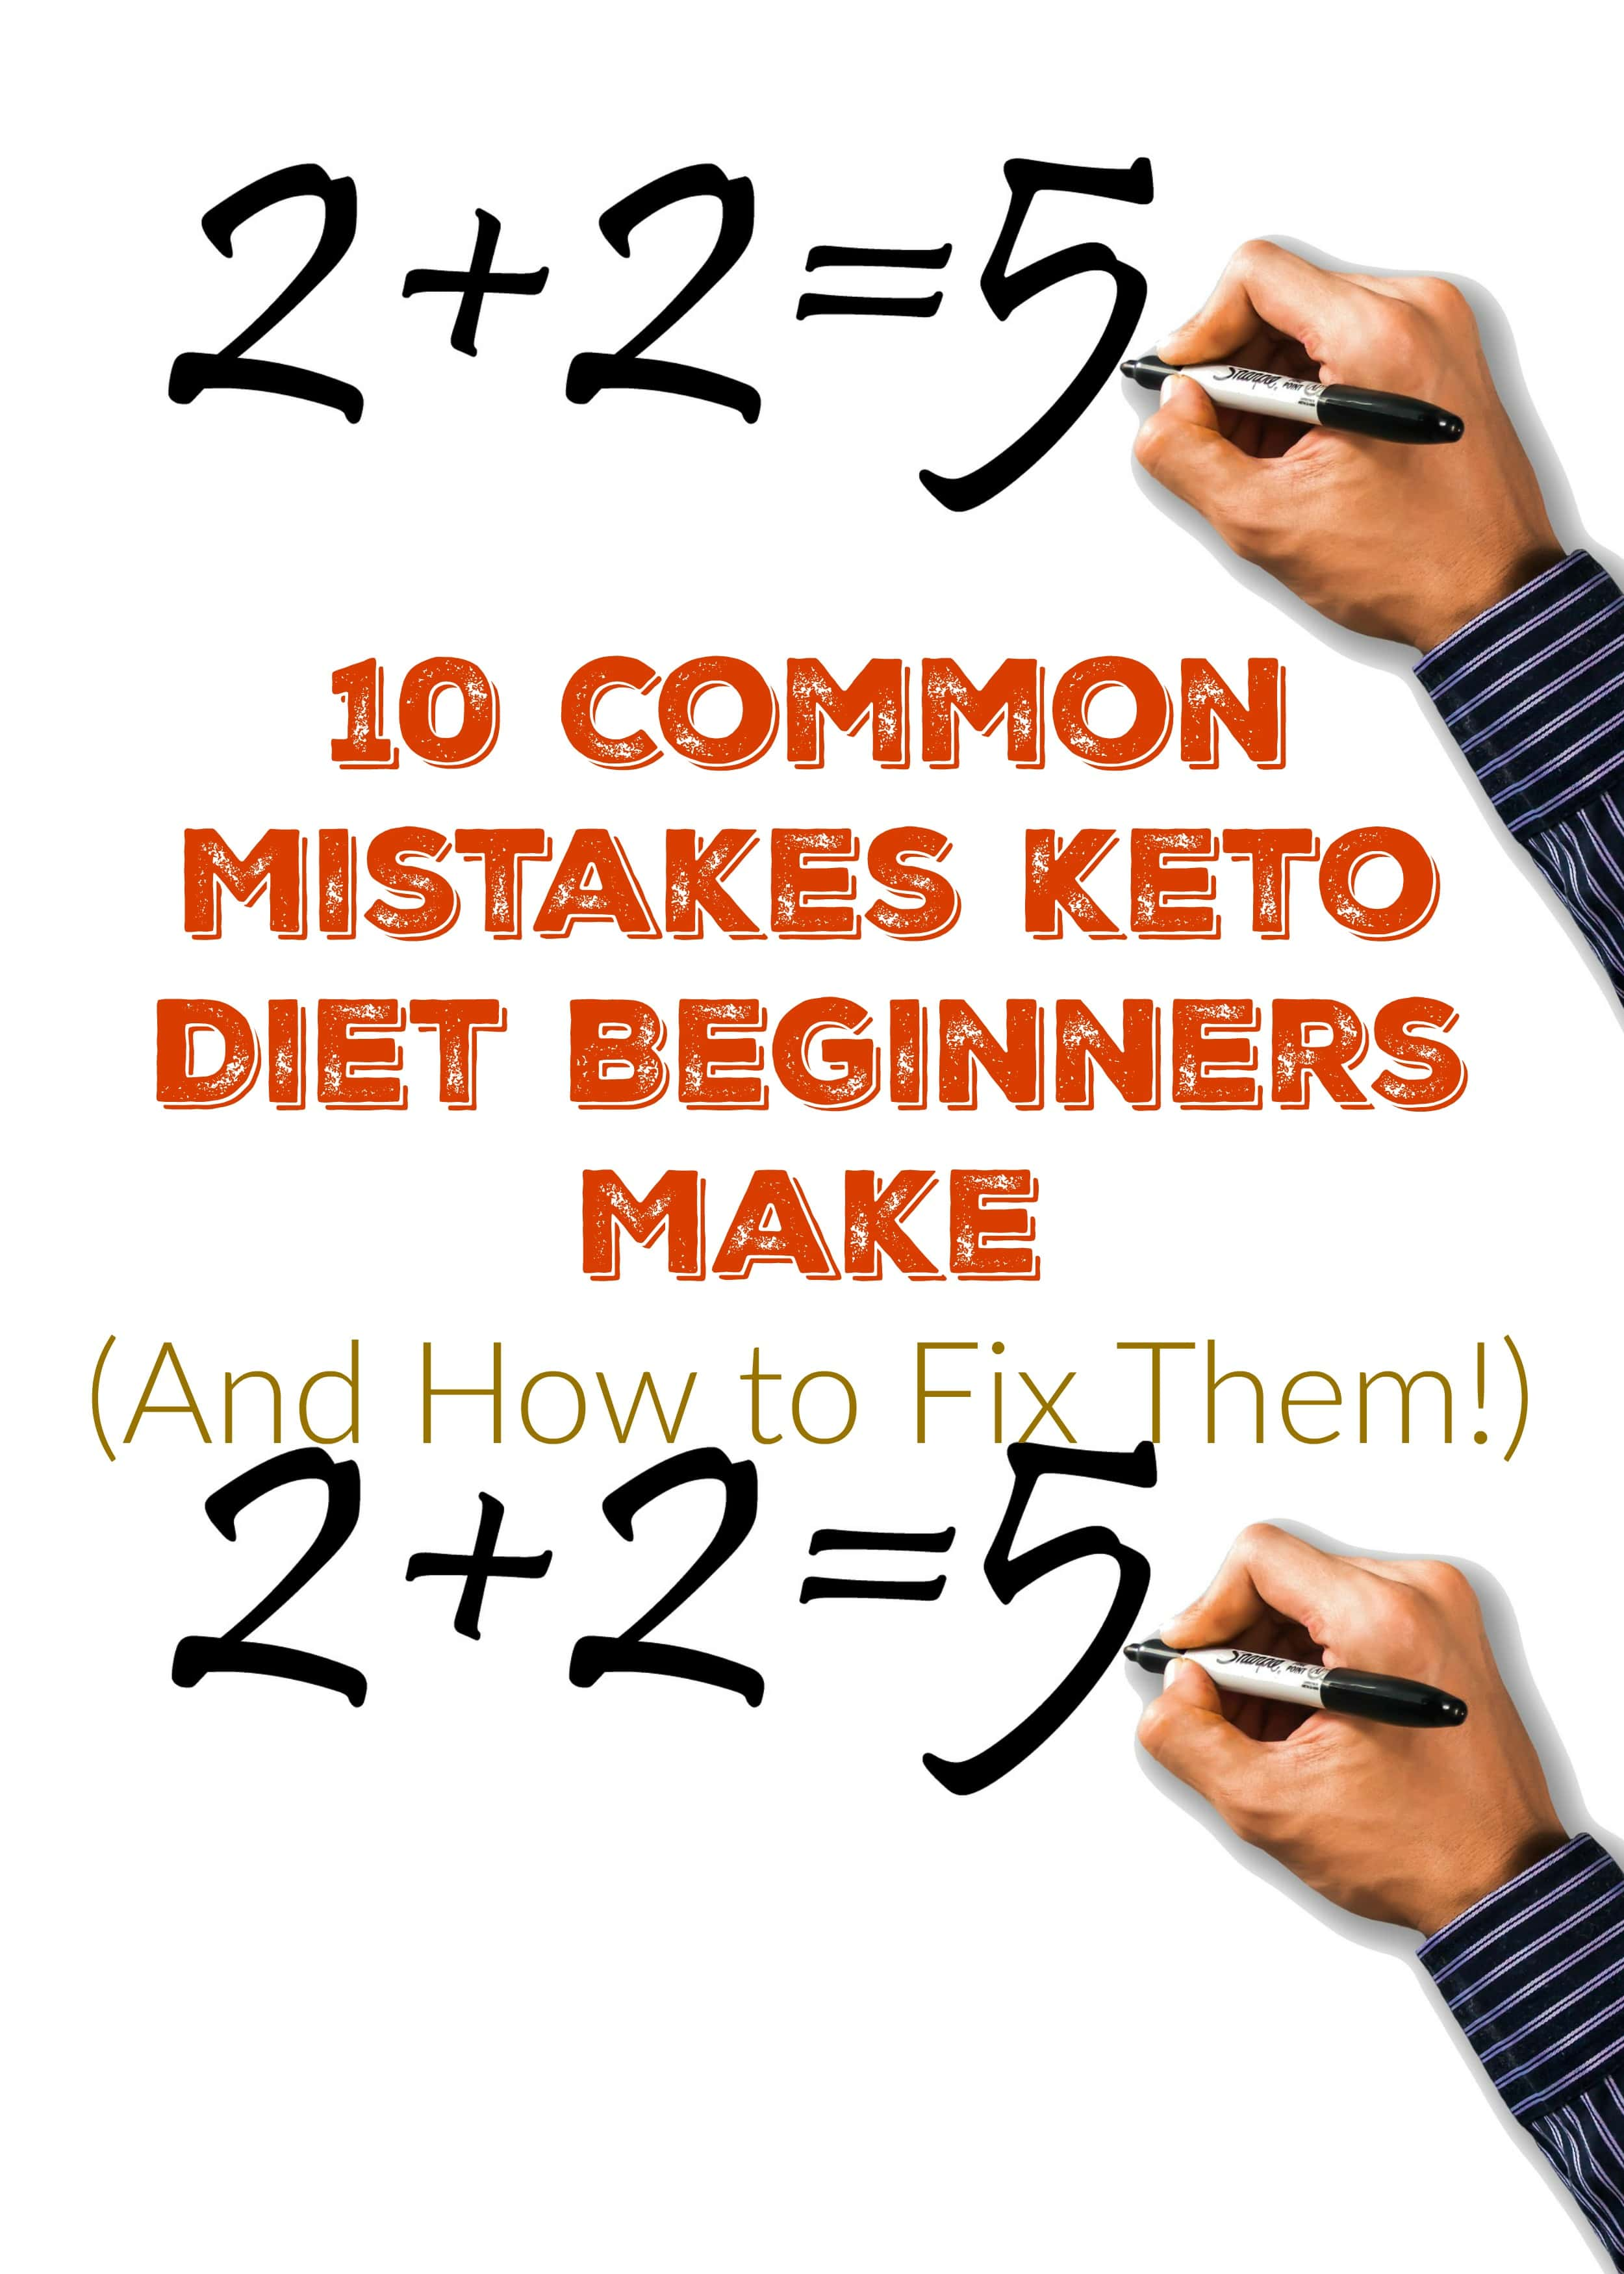 What Common Mistakes do Beginners Make on the Ketogenic Diet? | OnKetosis